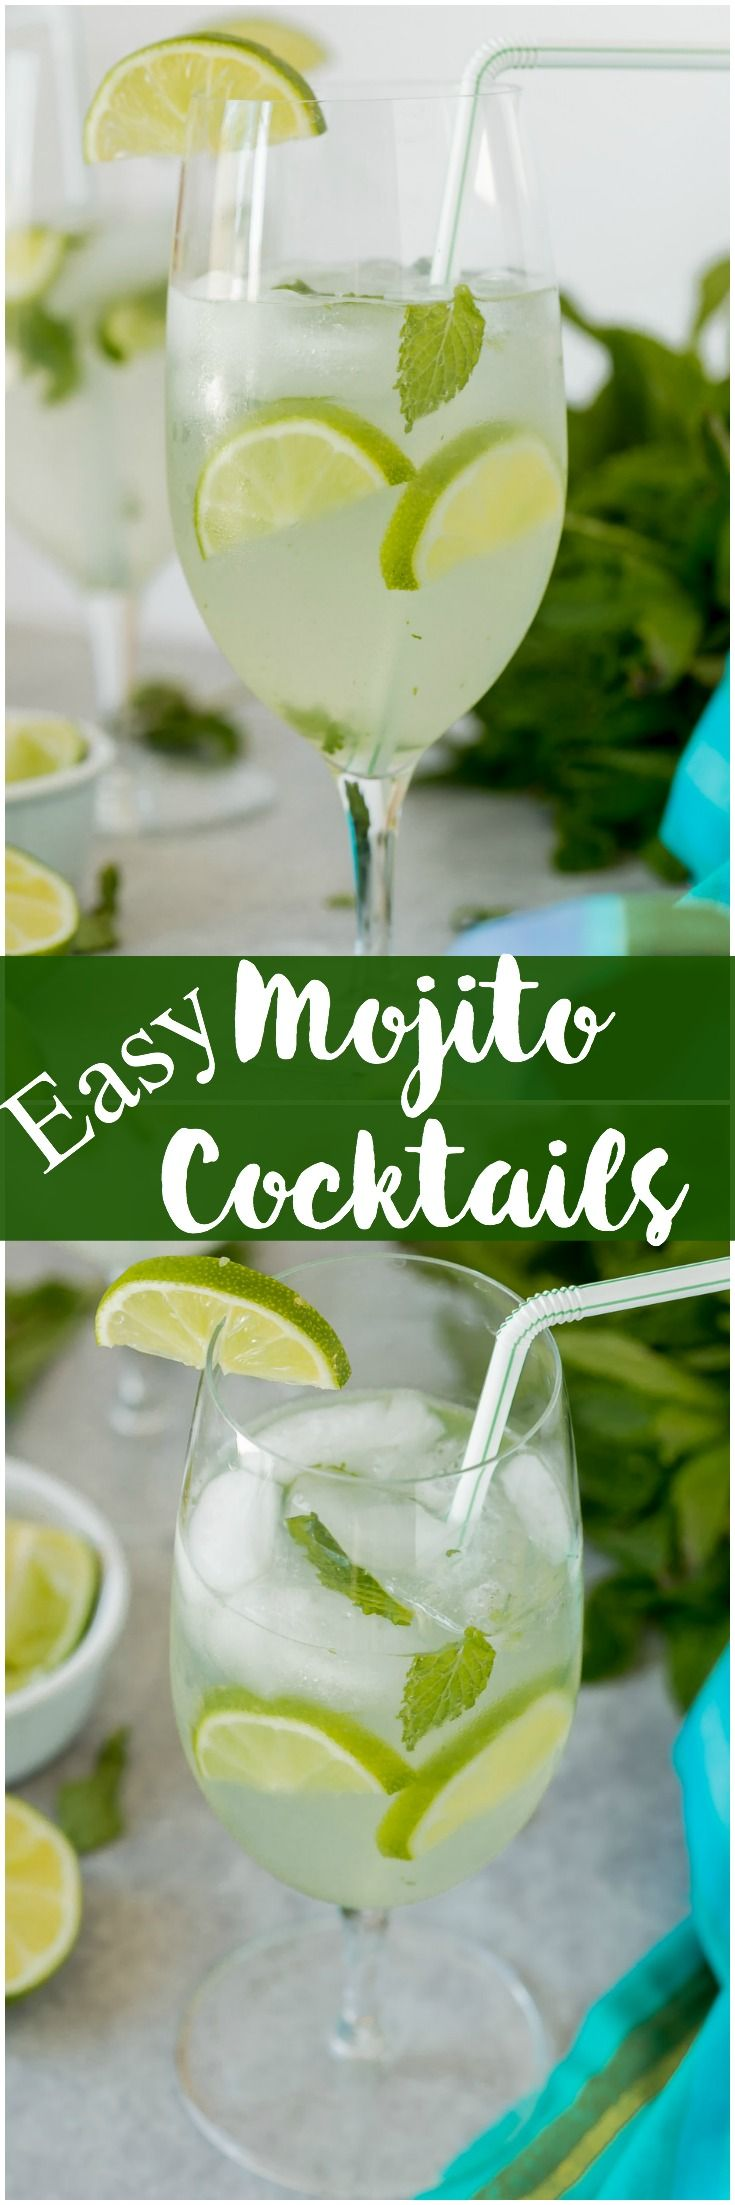 810 best images about Drinks on Pinterest